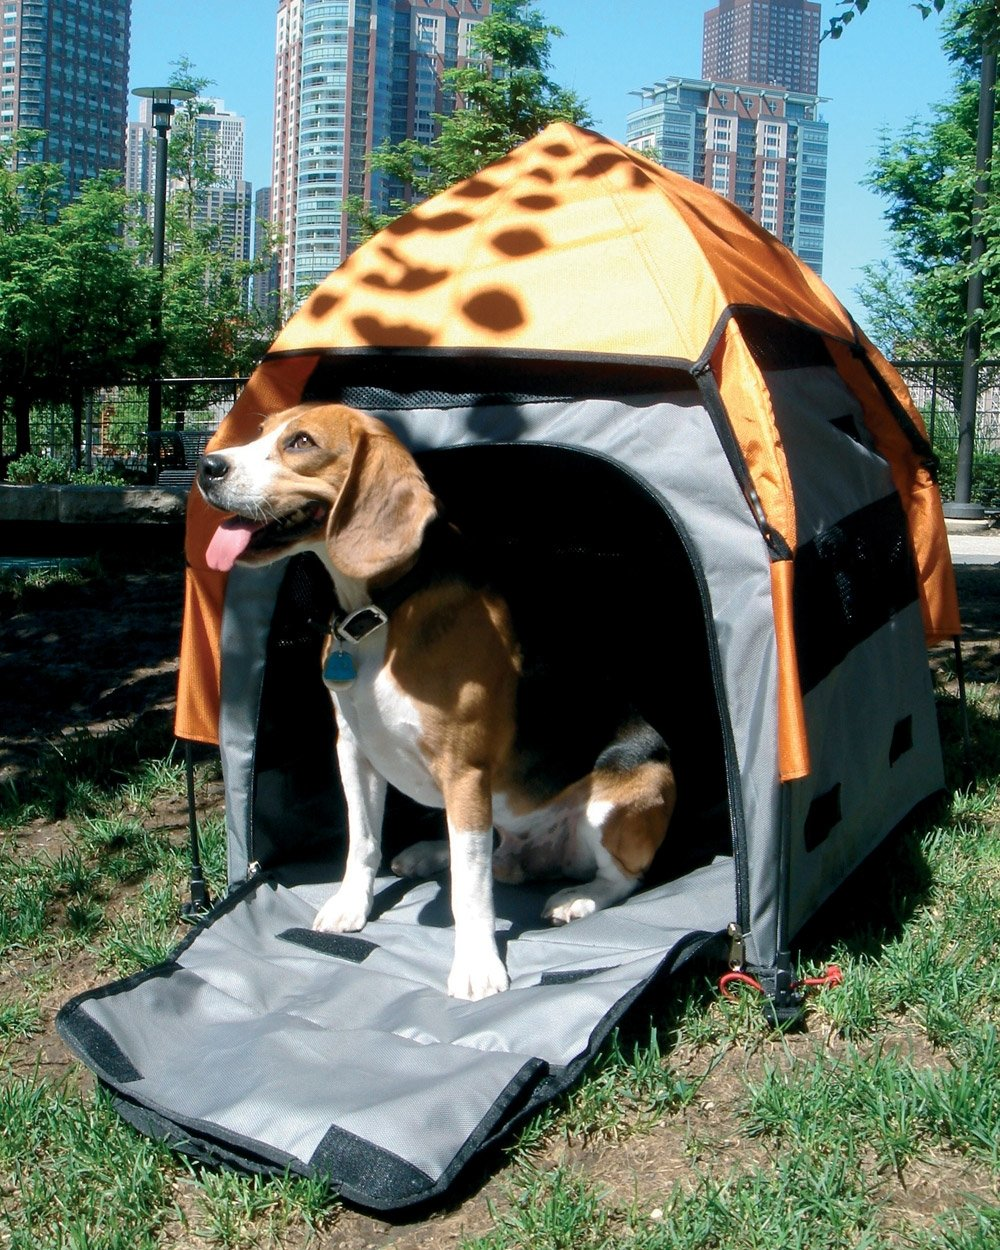 Amazon.com  Petego Umbra Pet Portable Pet House and Containment System Large  Pet Crates  Pet Supplies & Amazon.com : Petego Umbra Pet Portable Pet House and Containment ...